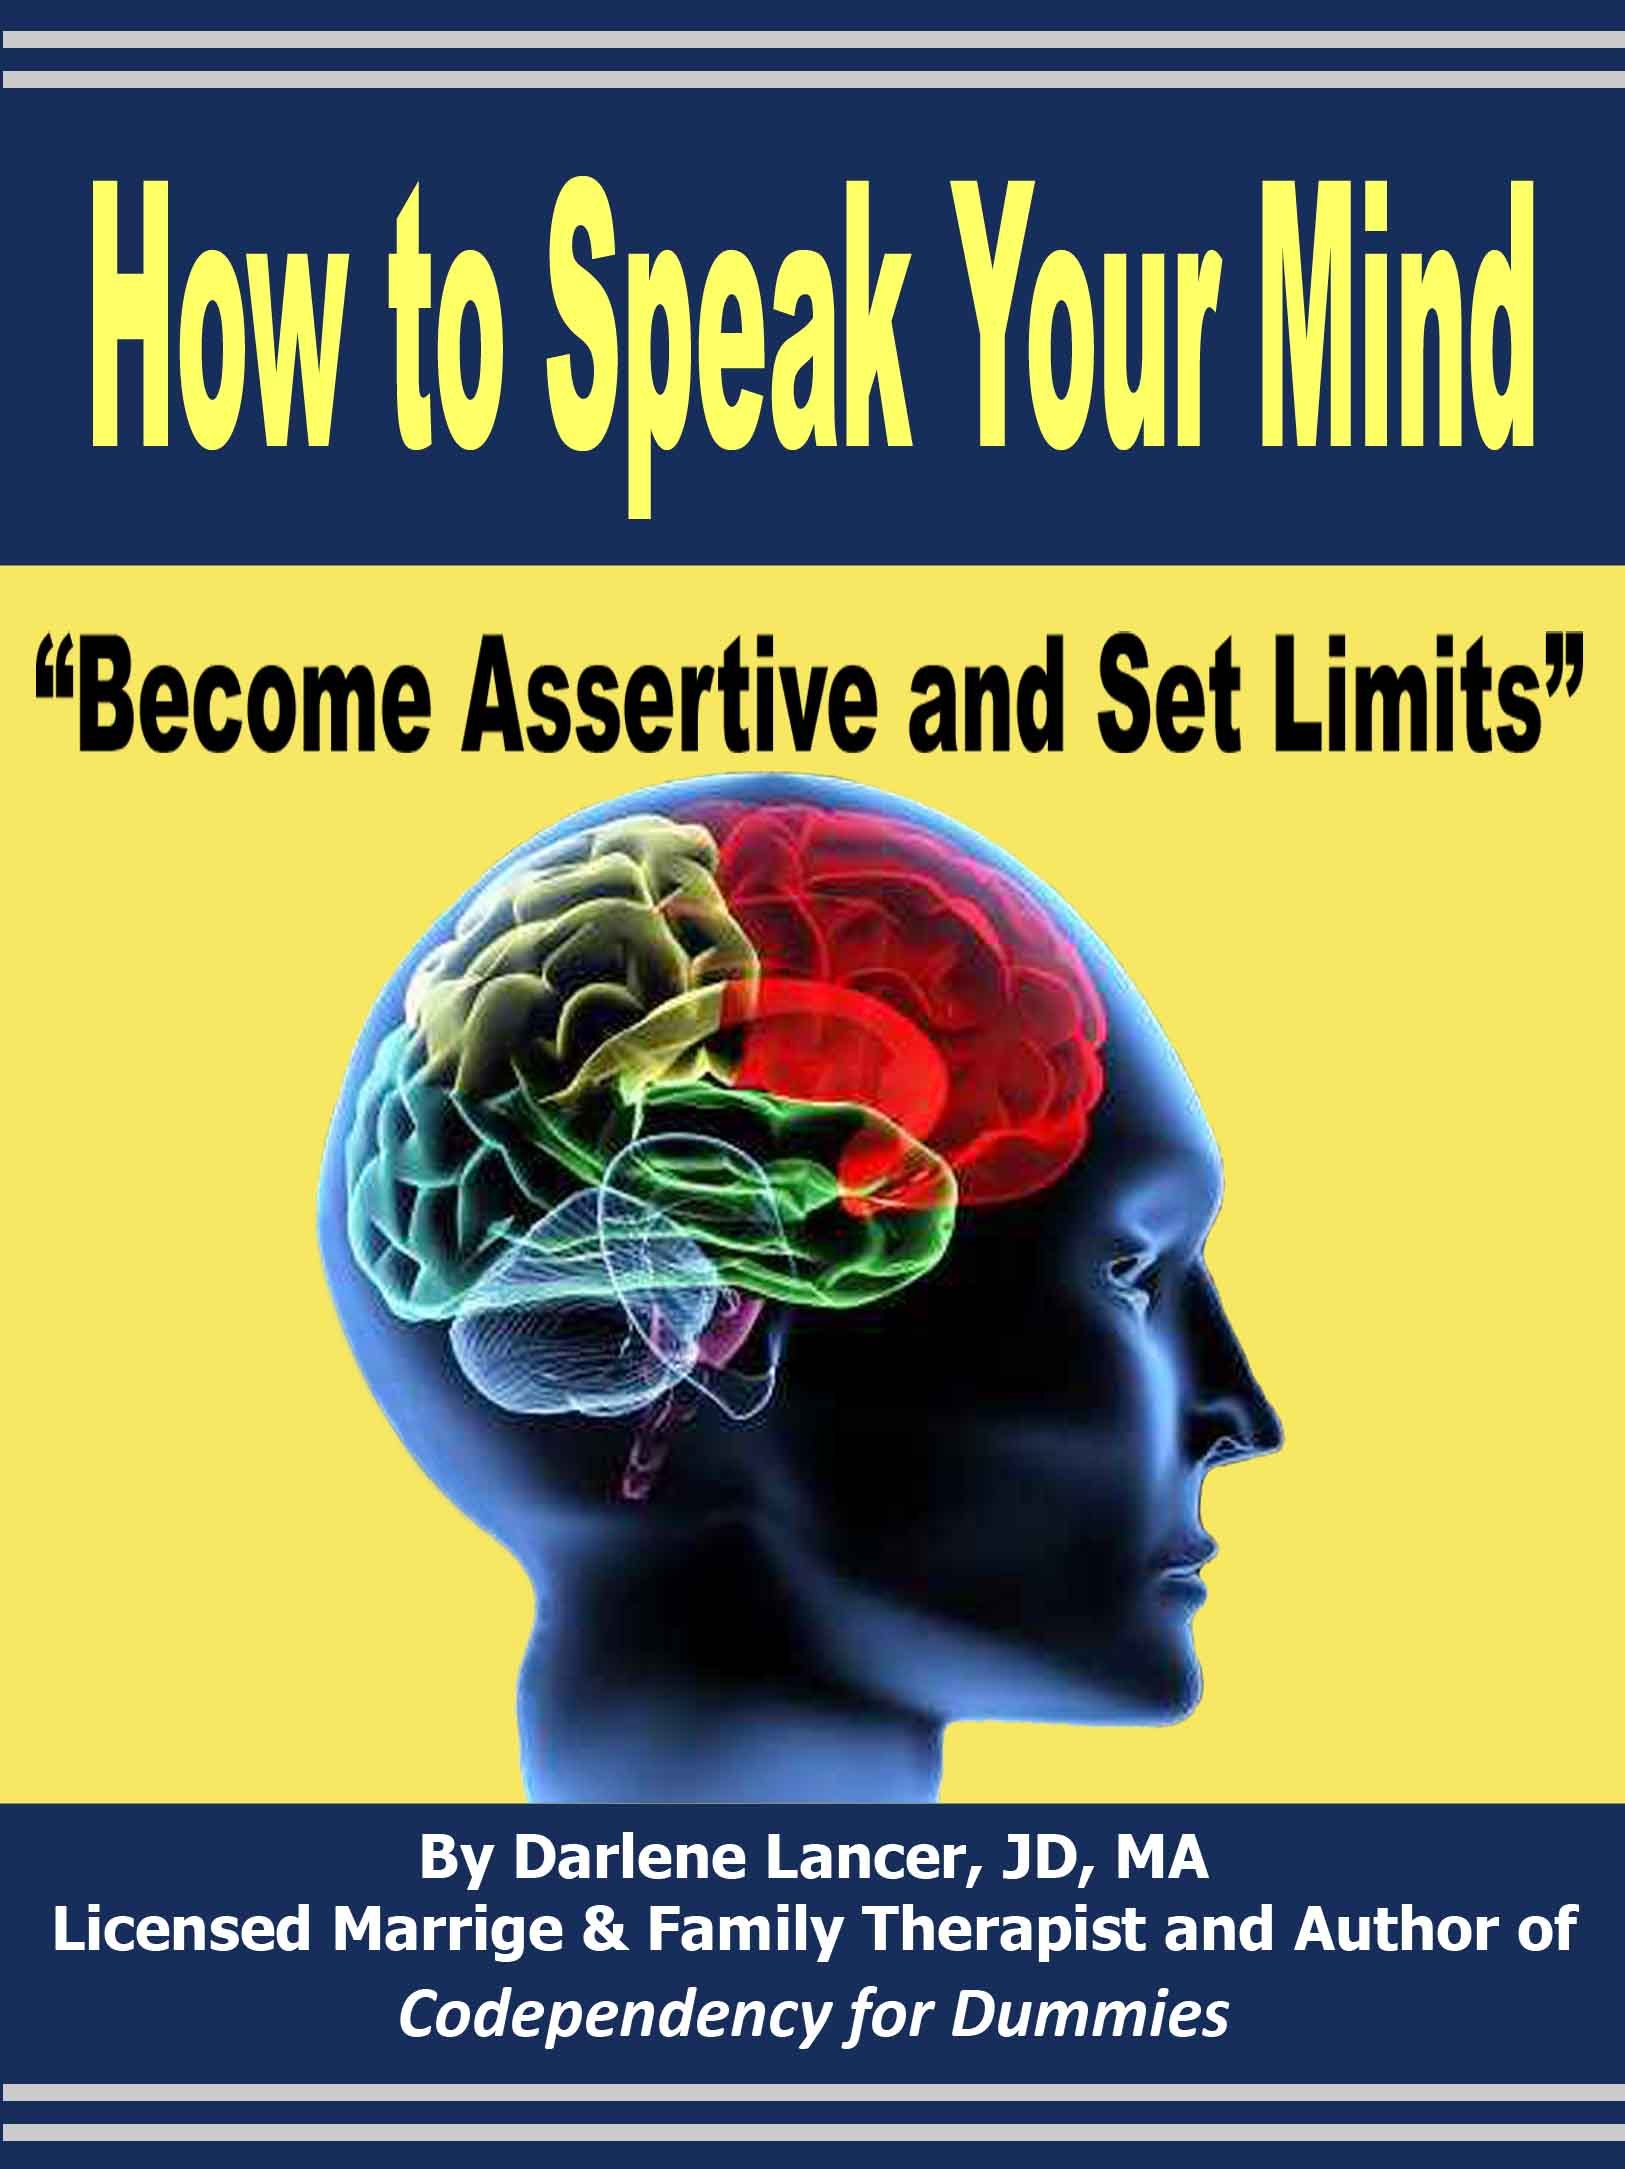 How to Speak Your Mind – Become Assertive and Set Limits